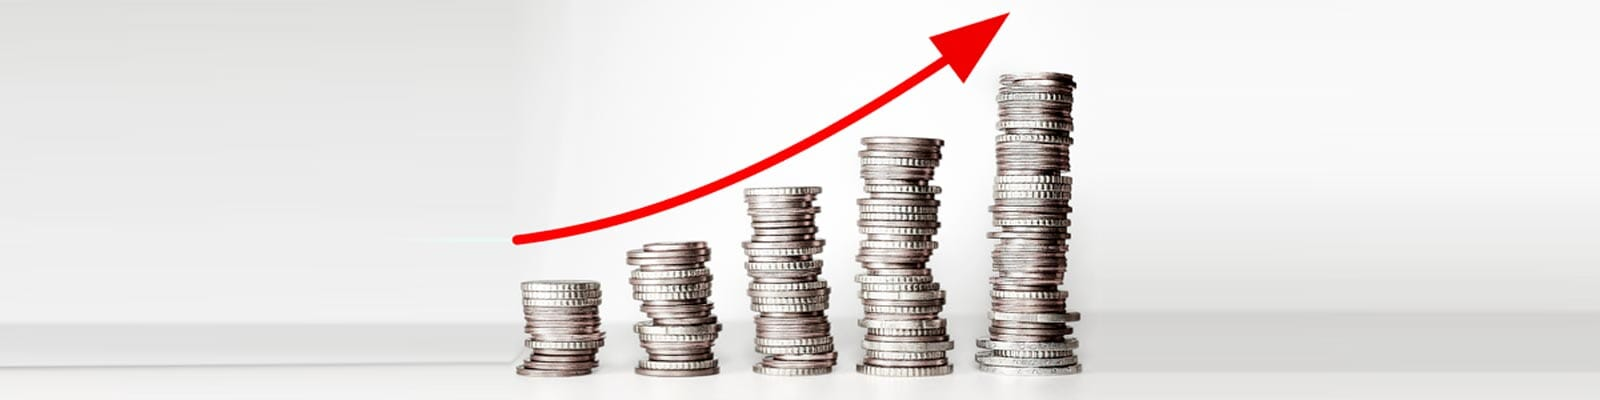 Stacks of coins with a rising red arrow for Lead internet Marketing's CRO